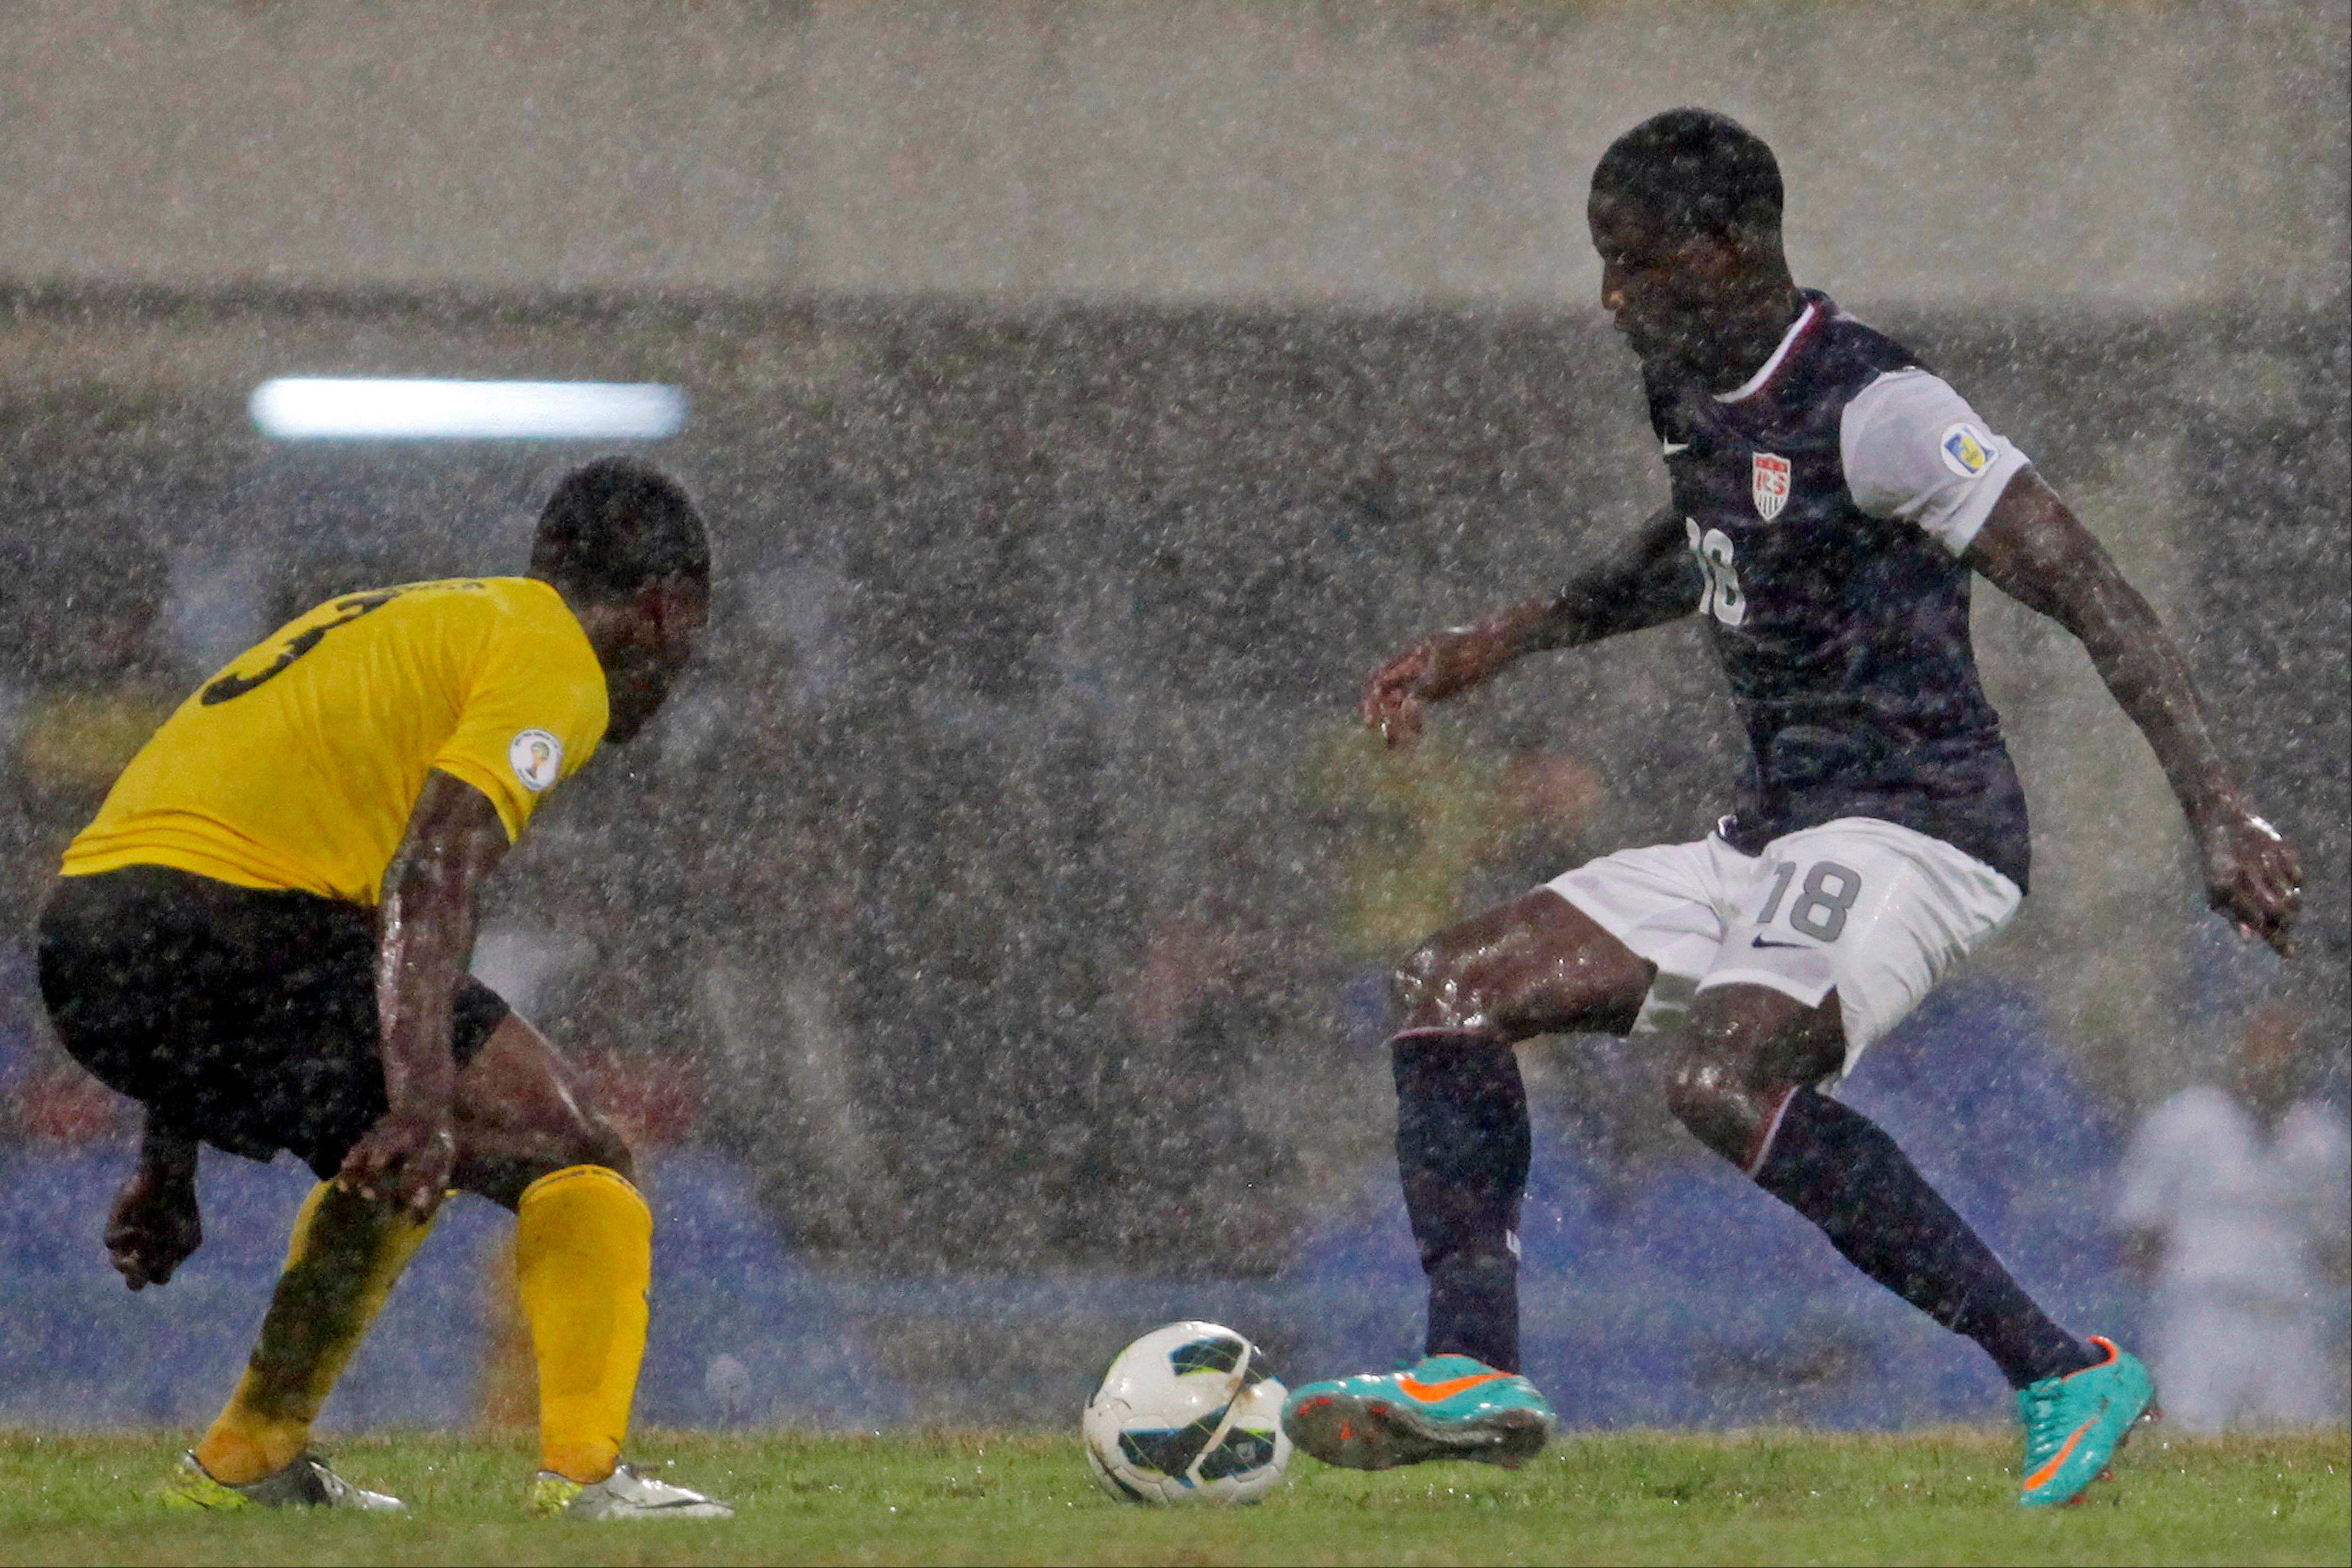 U.S. national team player Eddie Johnson, right, challenges Antigua and Barbuda�s Zaine Sebastian Francis-Angol Friday during a 2014 World Cup qualifying soccer match in St. John, Antigua and Barbuda.